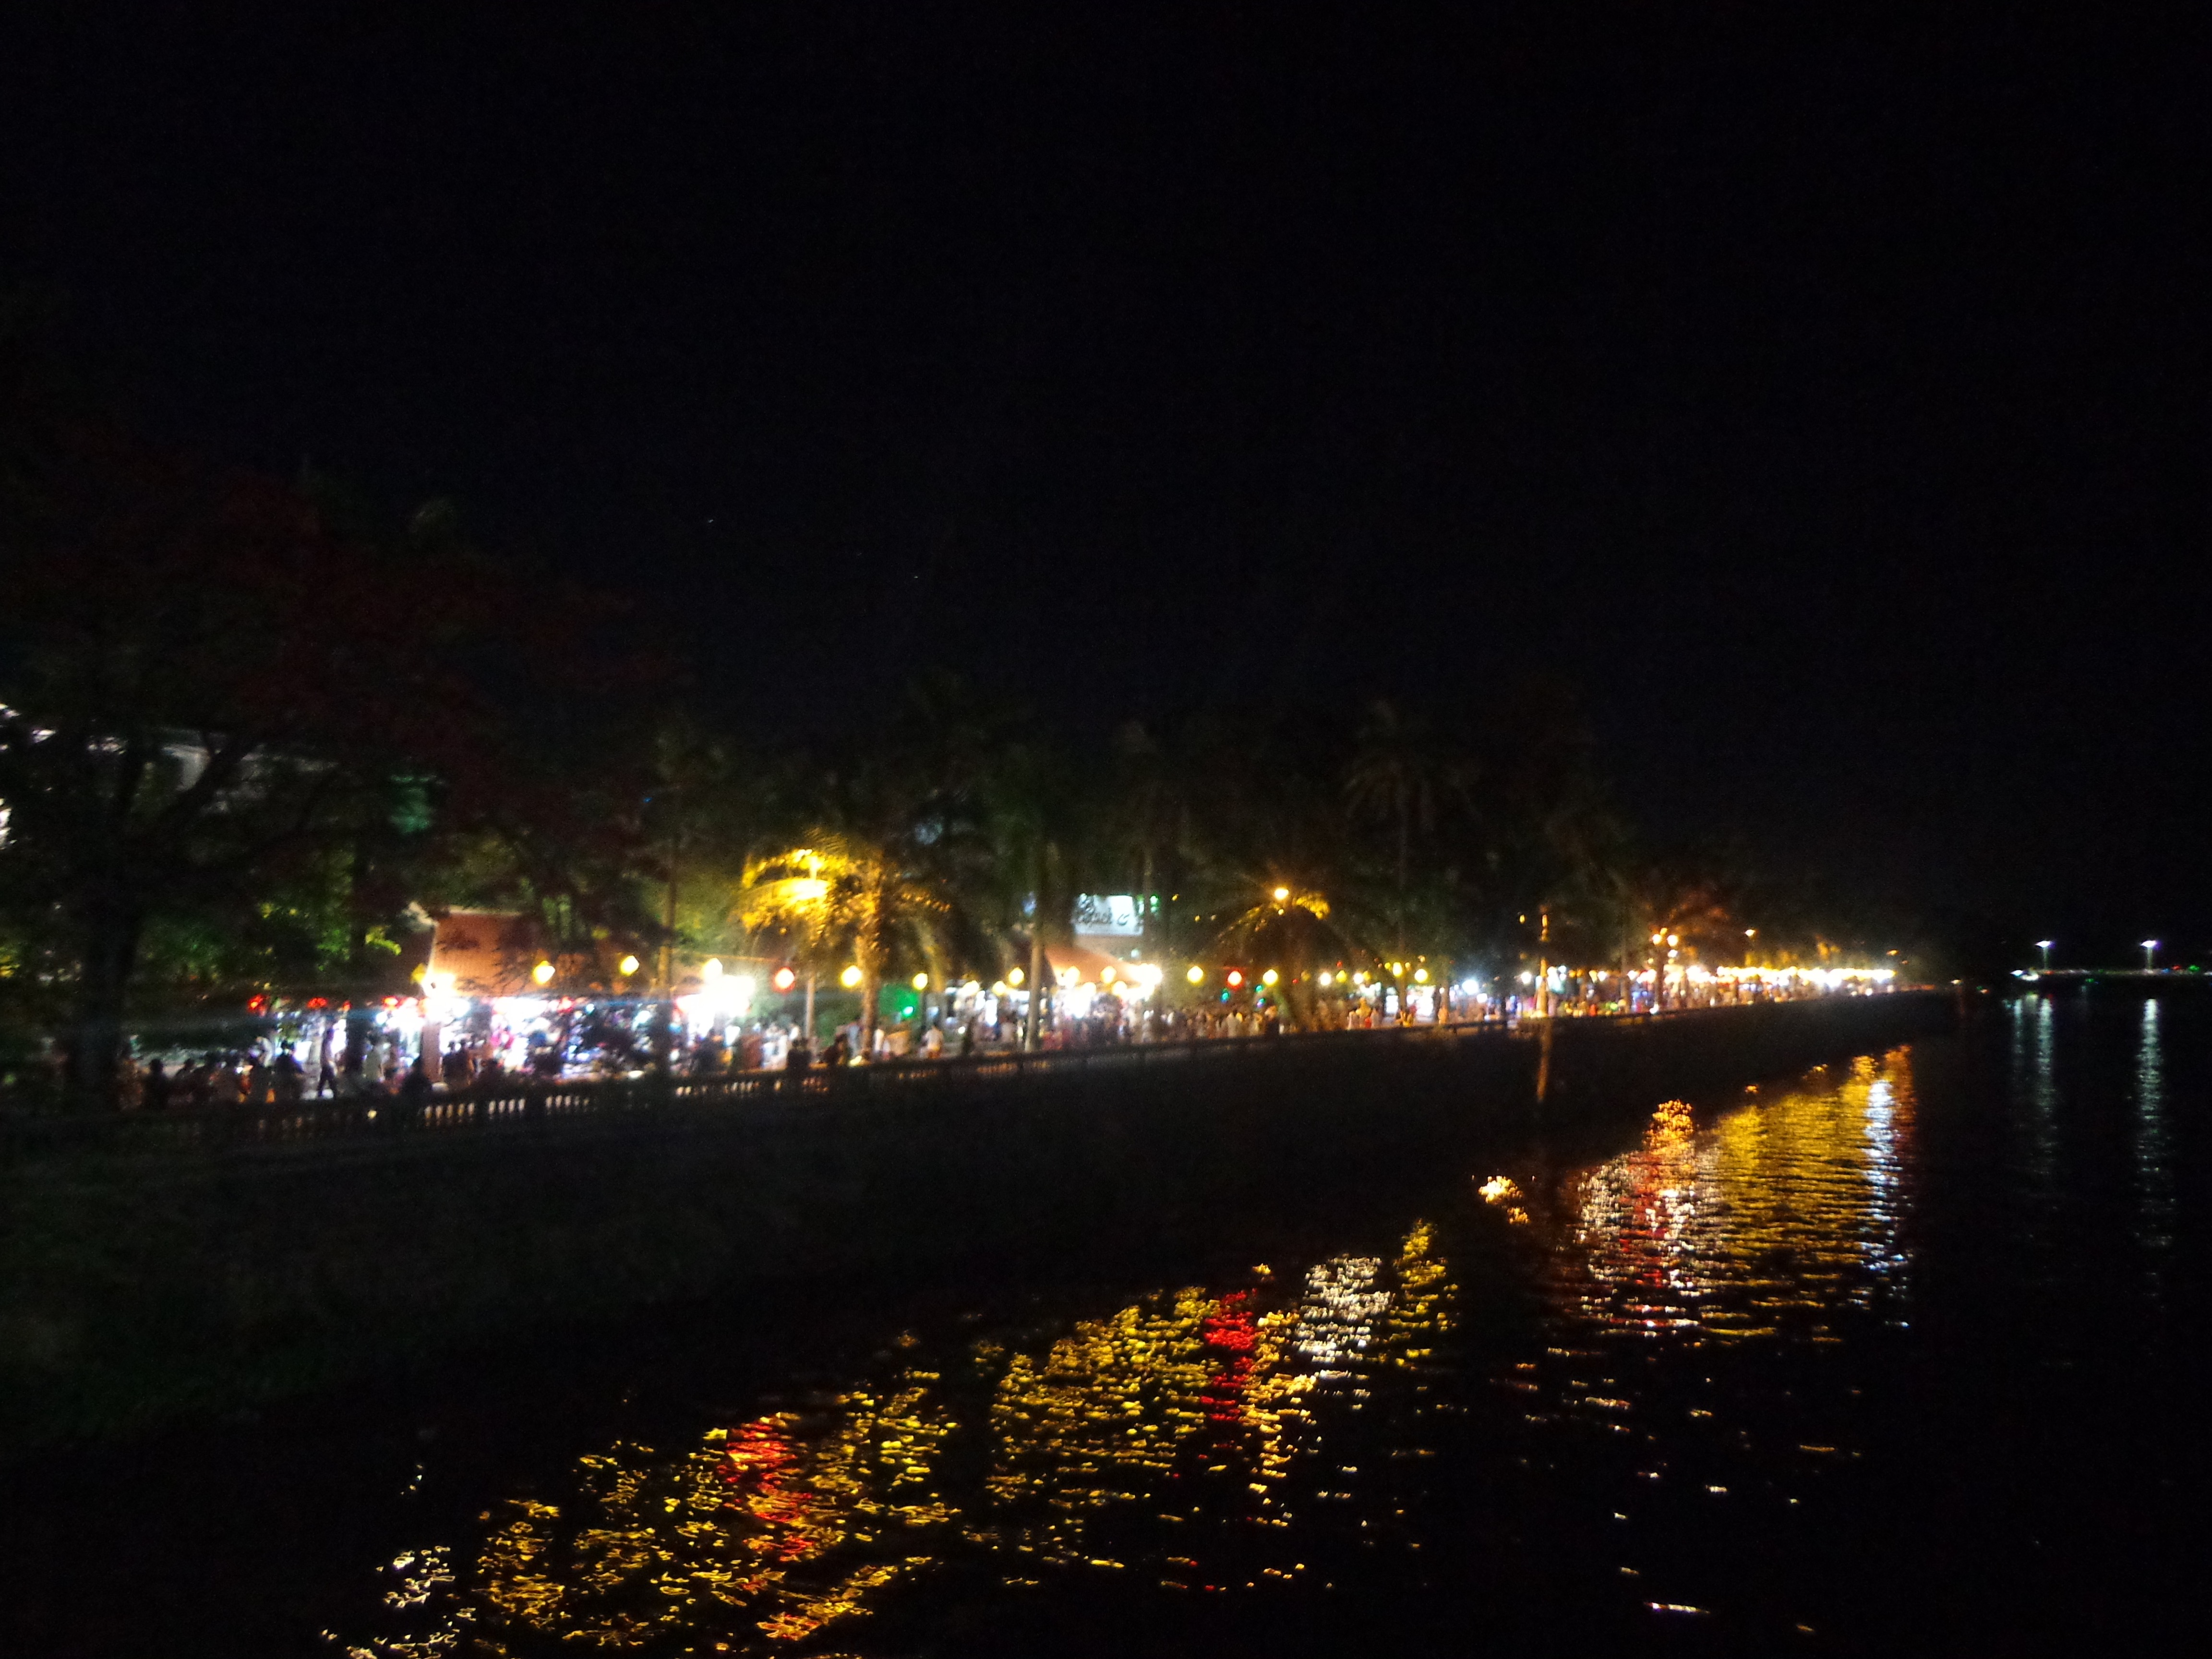 Perfume river at night illuminated by commercial establishments across the river.